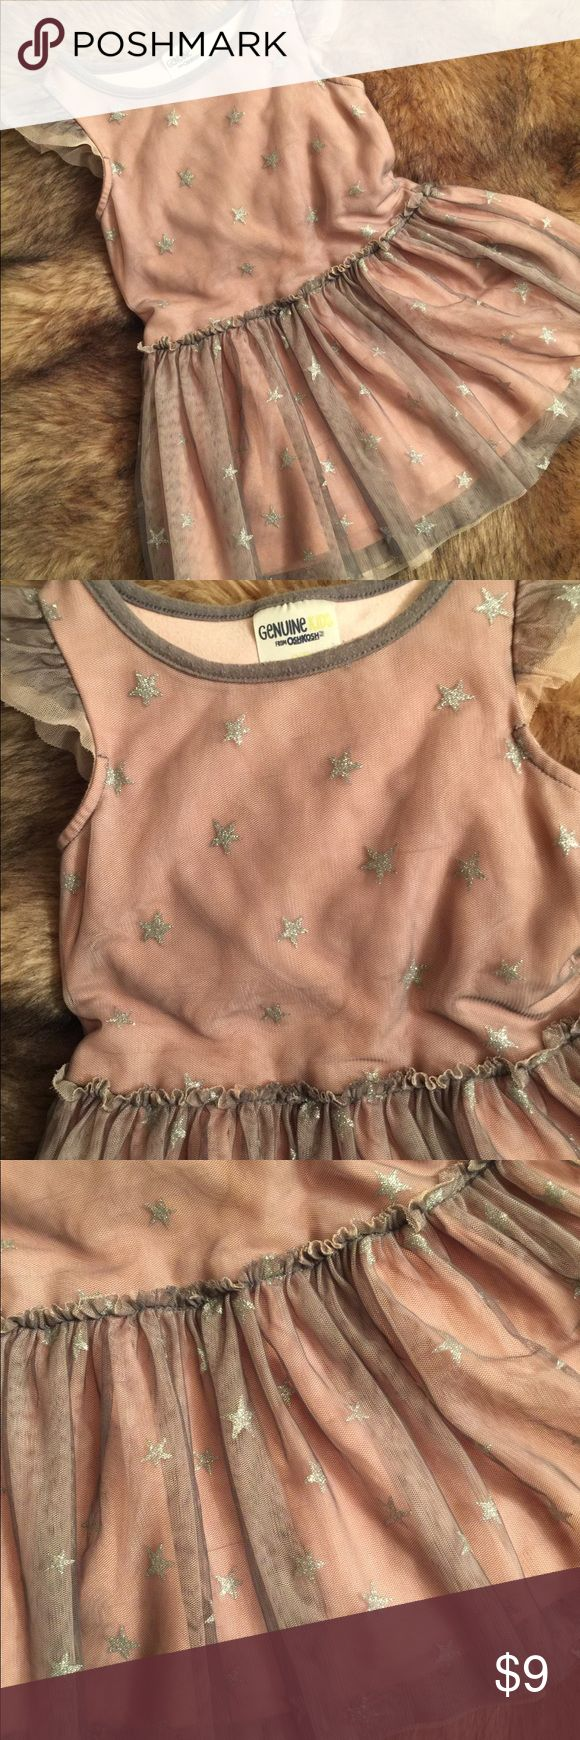 GENUINE by Oshkosh Girl's Pink and Silver Dress This adorable dress for your toddler is super cute and so much fun! She will love it!  Has underlining of soft pink Cotten with overlay of fine mesh netting with glitter stars. It is a pullover and it is in great condition. Tiny flaws as pointed out in pic.. a few threads pulled but it honestly is only noticeable held up to eye. It is so cute.. looks and acts like Party Dress but good anytime for fun play! Priced accordingly. GENUINE by OSH…